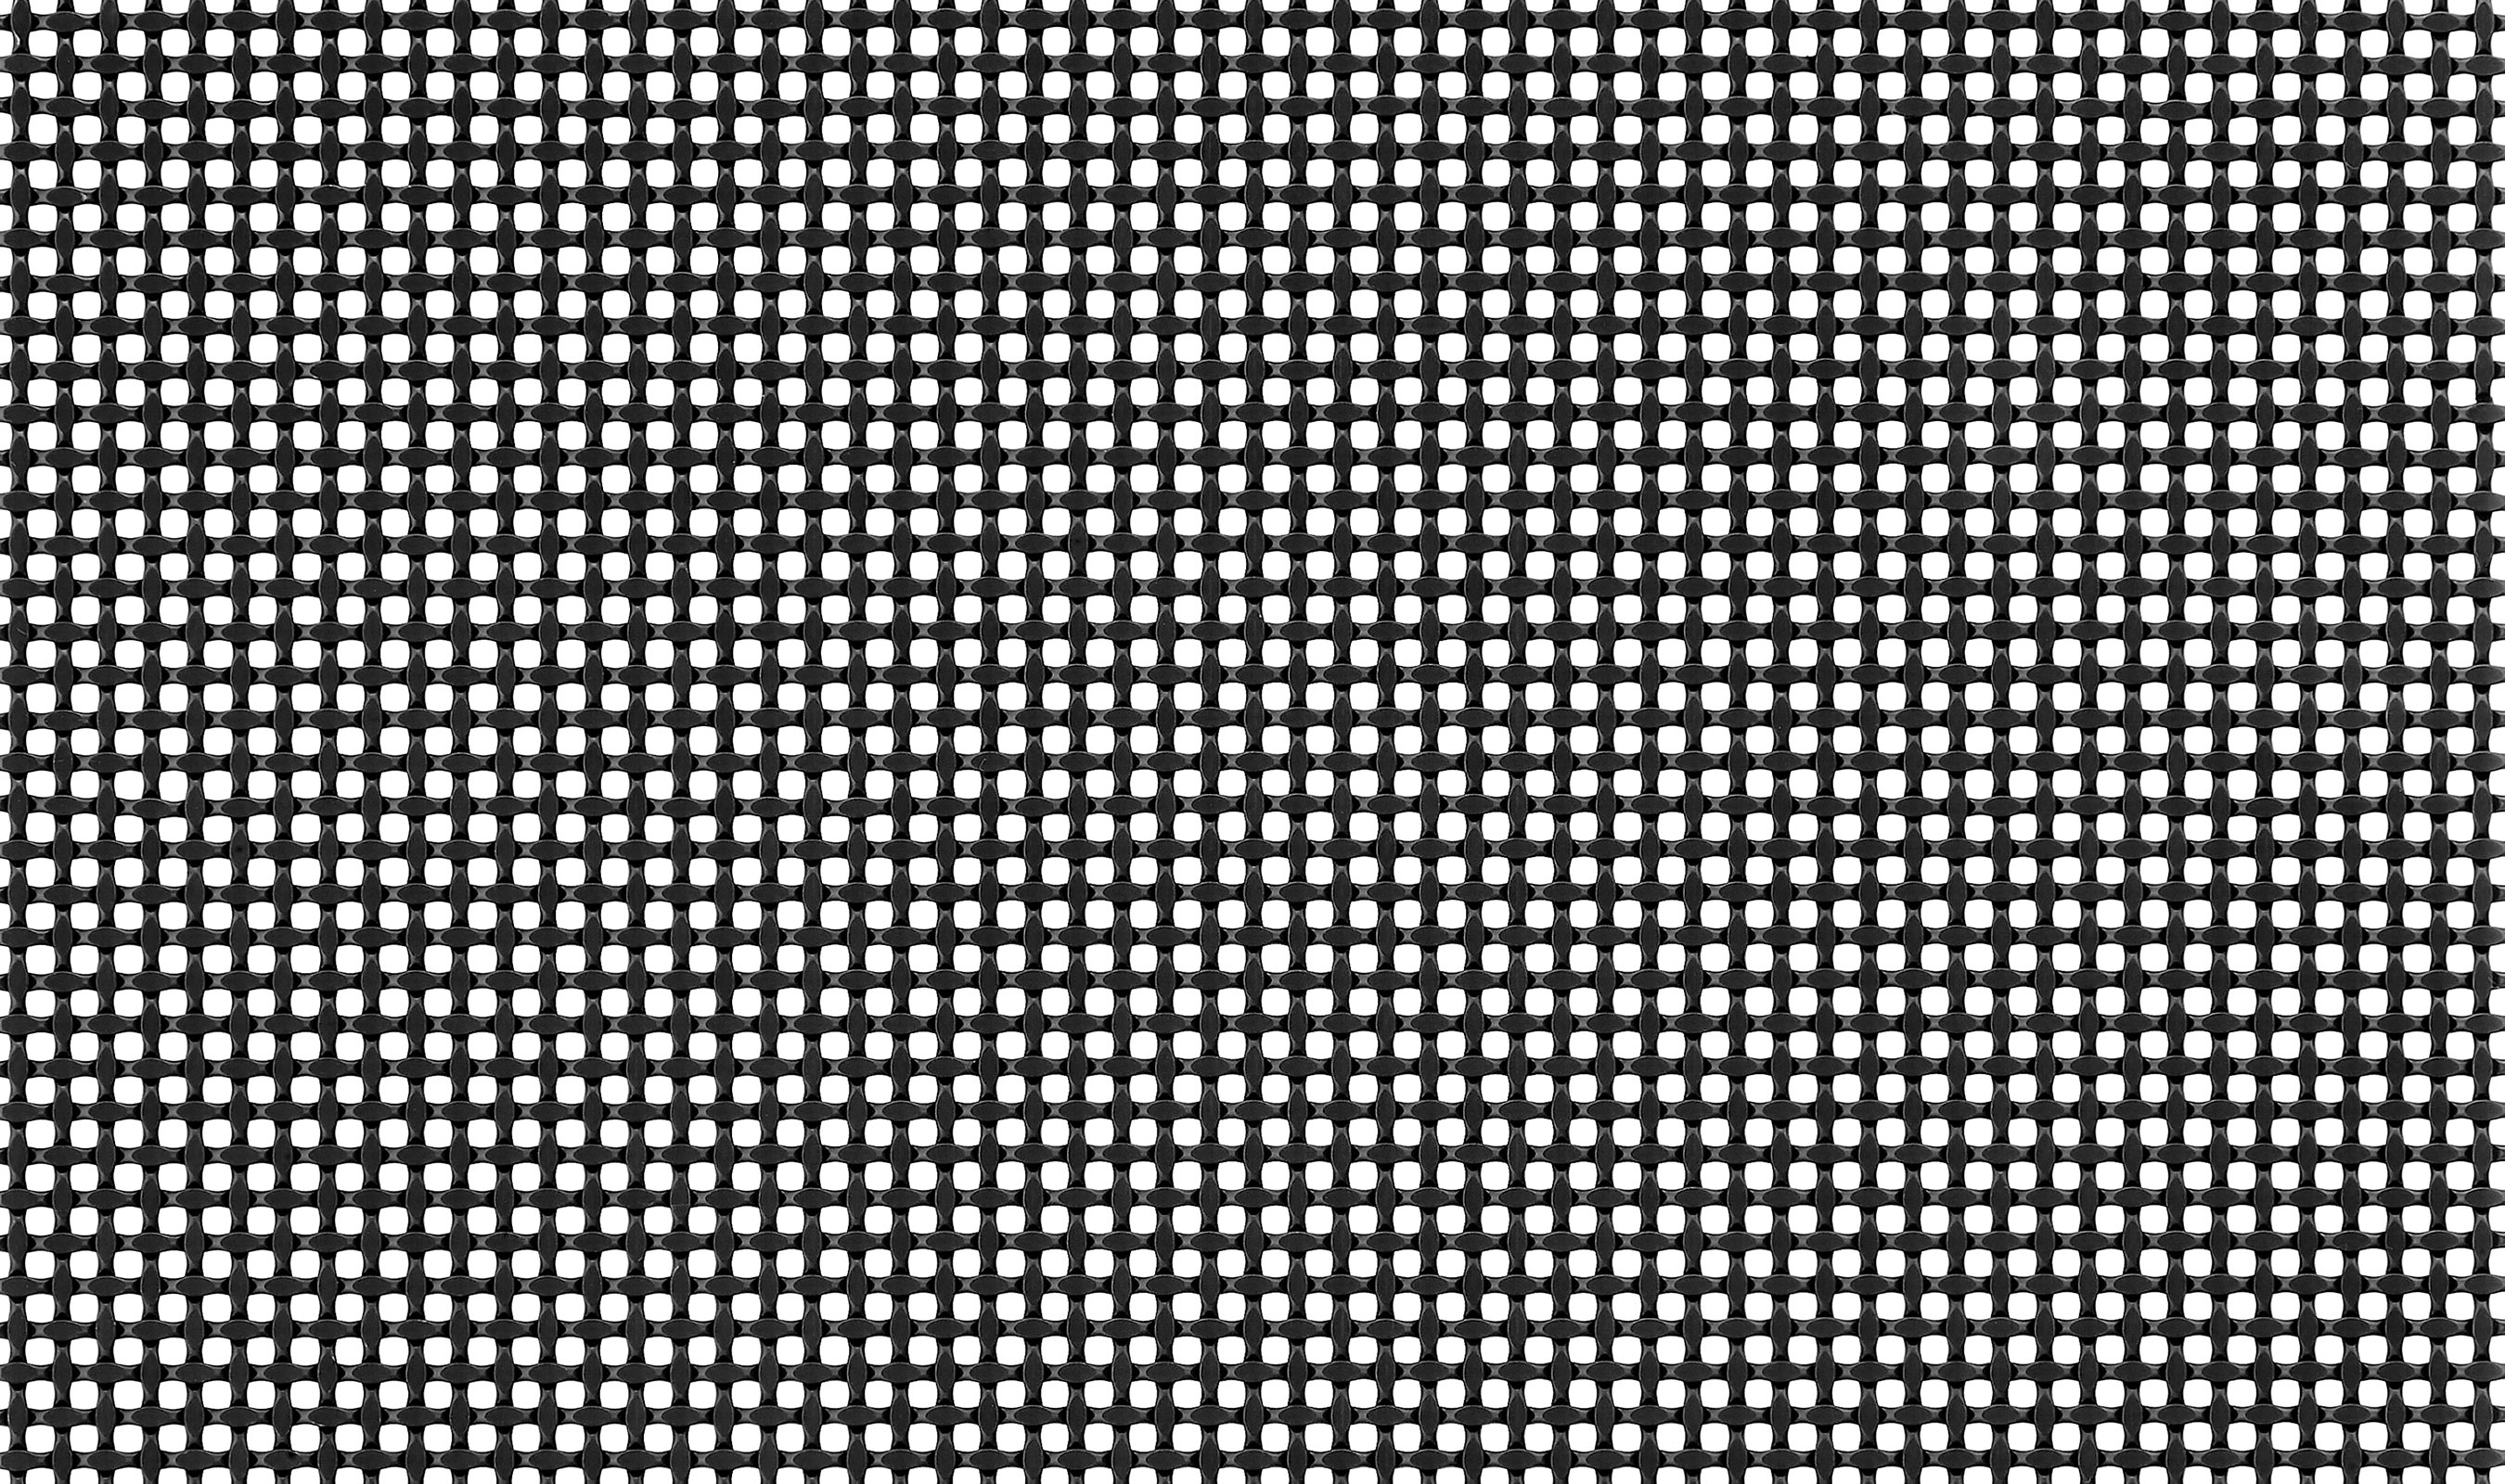 S-50 Dark Oxide Plated wire mesh finish